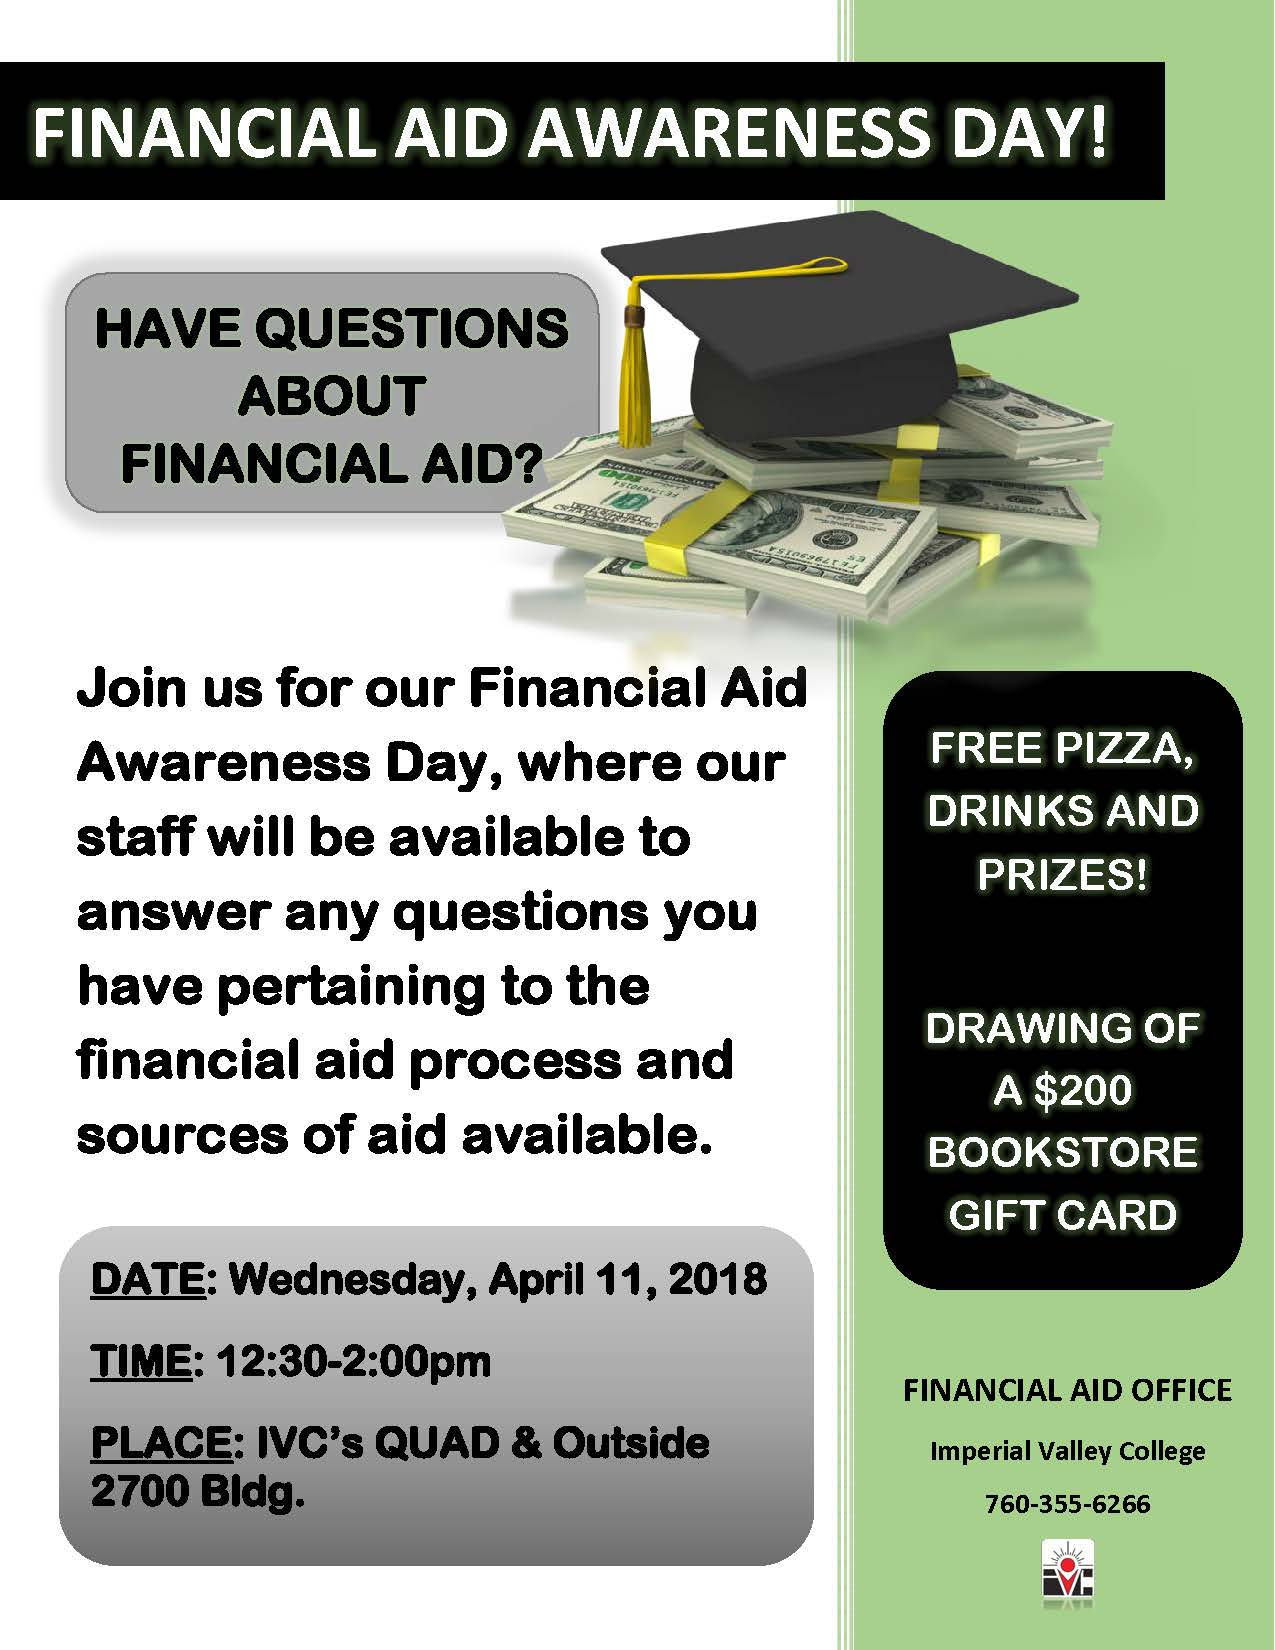 Financial Aid Awareness Day 2018